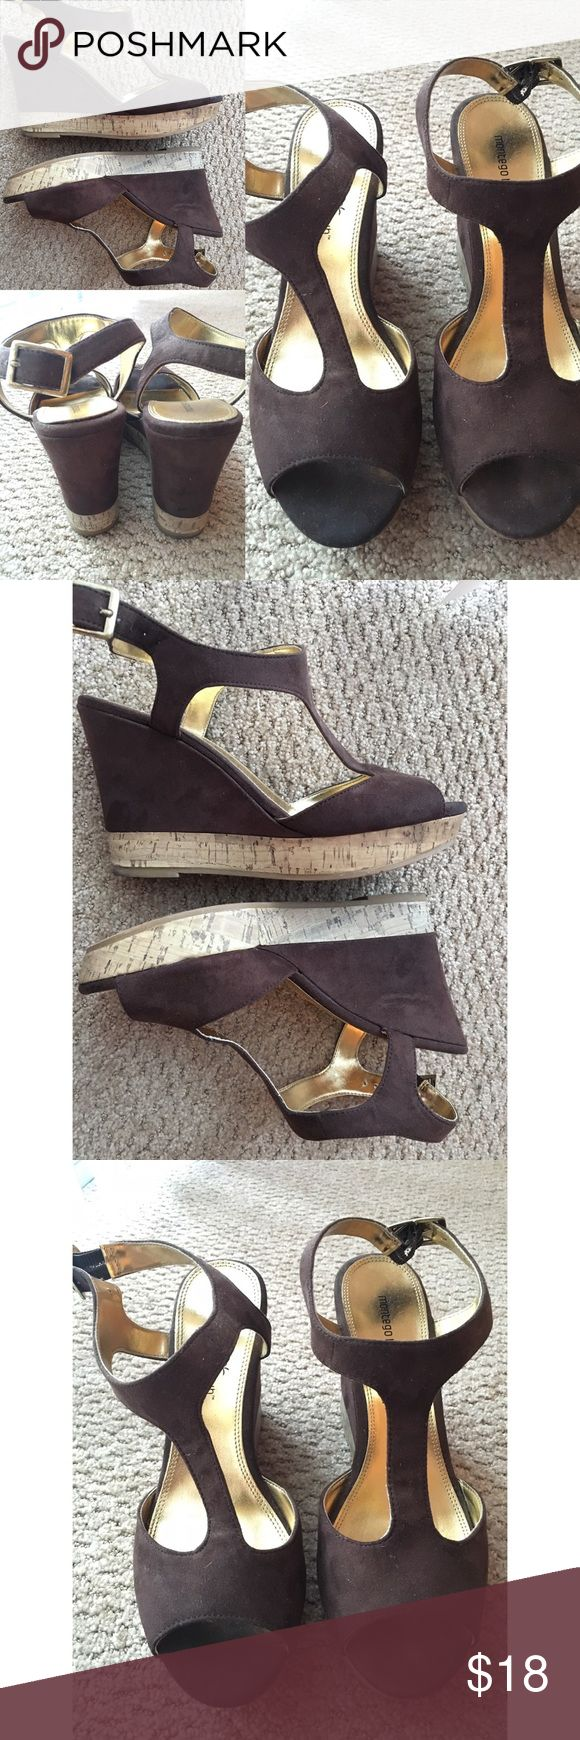 Brown wedges Gently used brown wedges - size 8 1/2 - brand : montegobay club purchased from Payless shoe source - heel is about 4 1/2 inch - no box - pls see pictures - no trades 🎀 Shoes Wedges